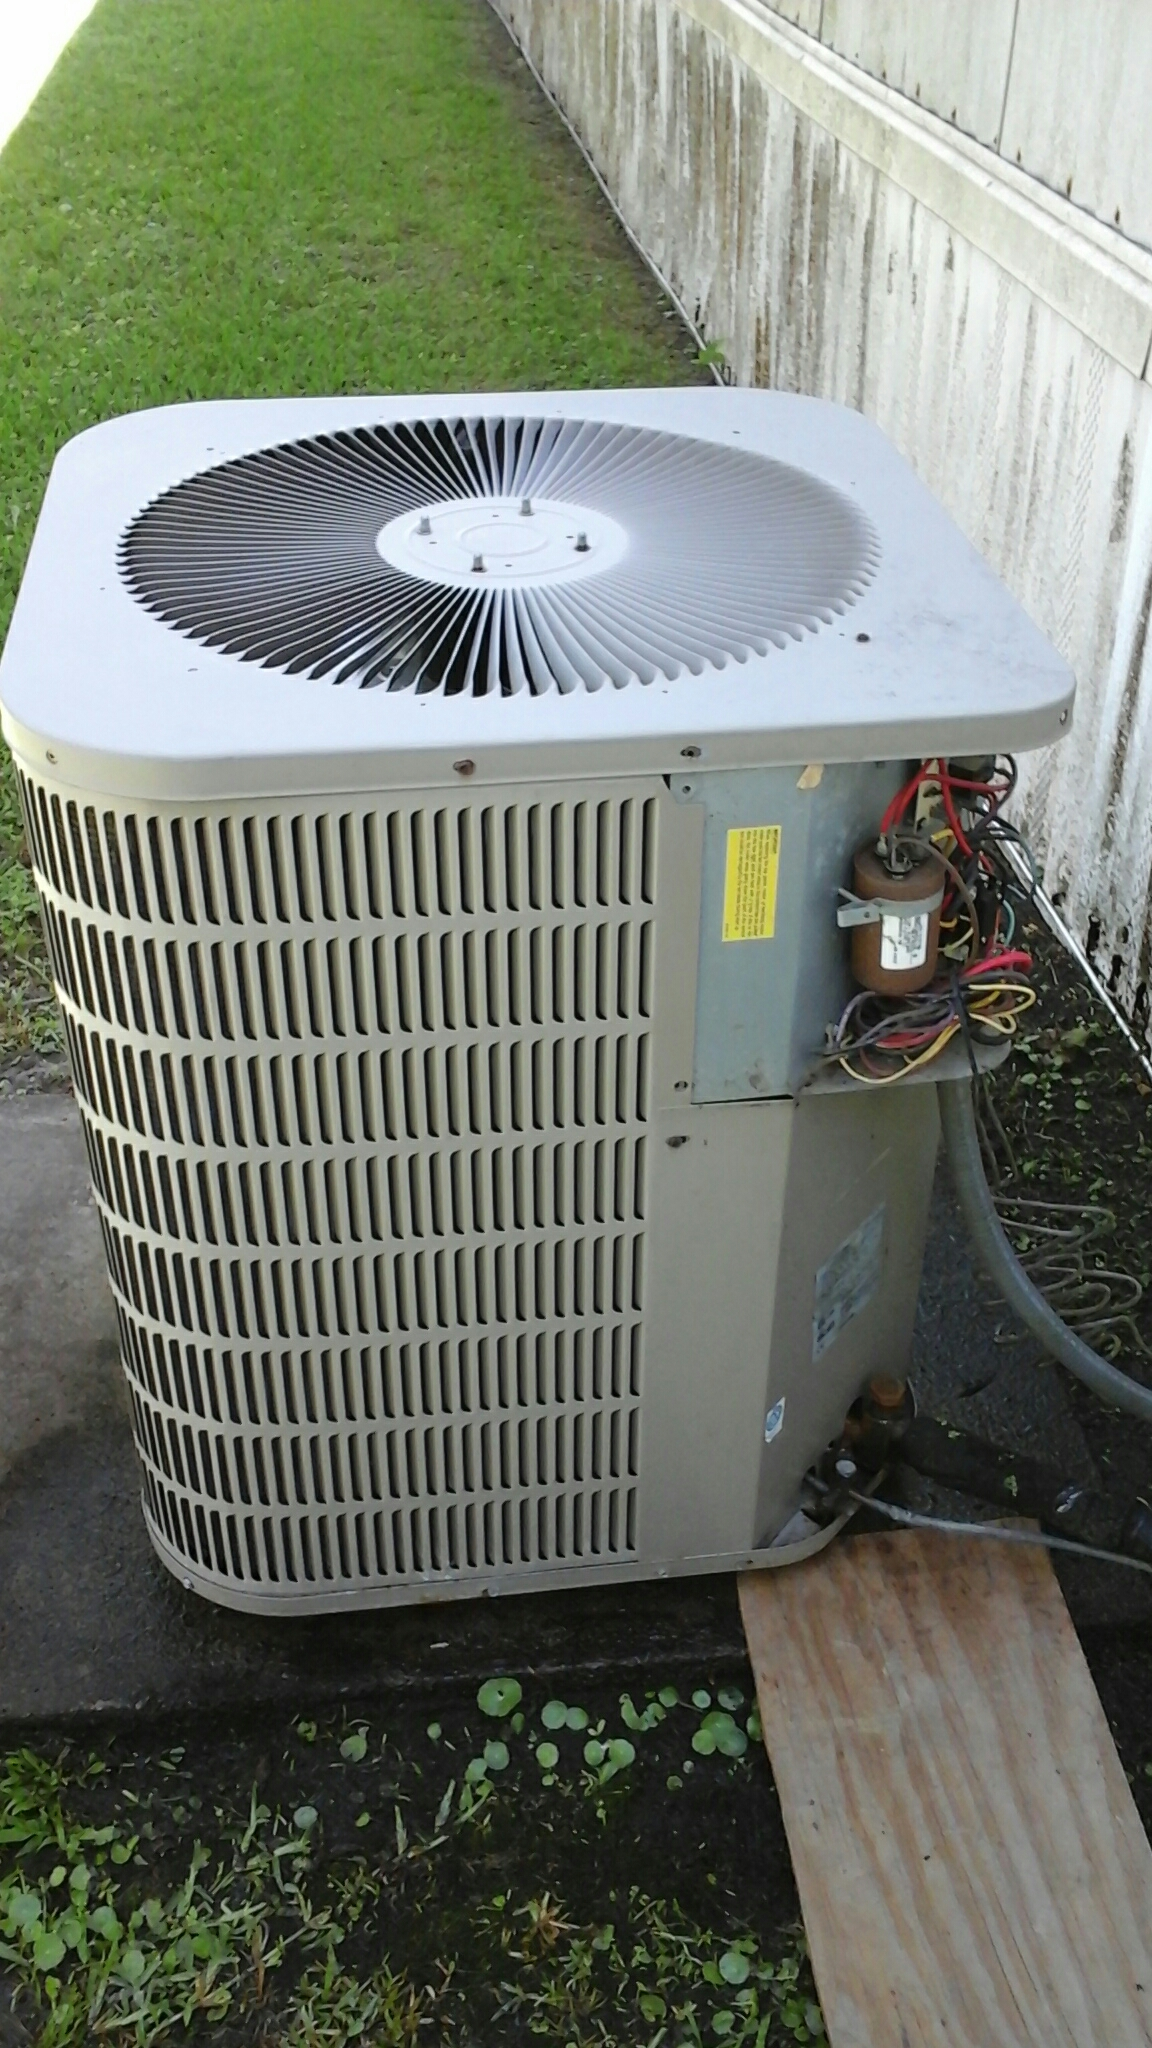 Addis, LA - Air conditioning service Addis on Goodman Heat Pump AC system for no cool, preformed diagnostic, inspection, also inspected carbon monoxide detector for proper operation, thermostat and duct work for any problems. Made needed repair. All unit components working properly at this time.